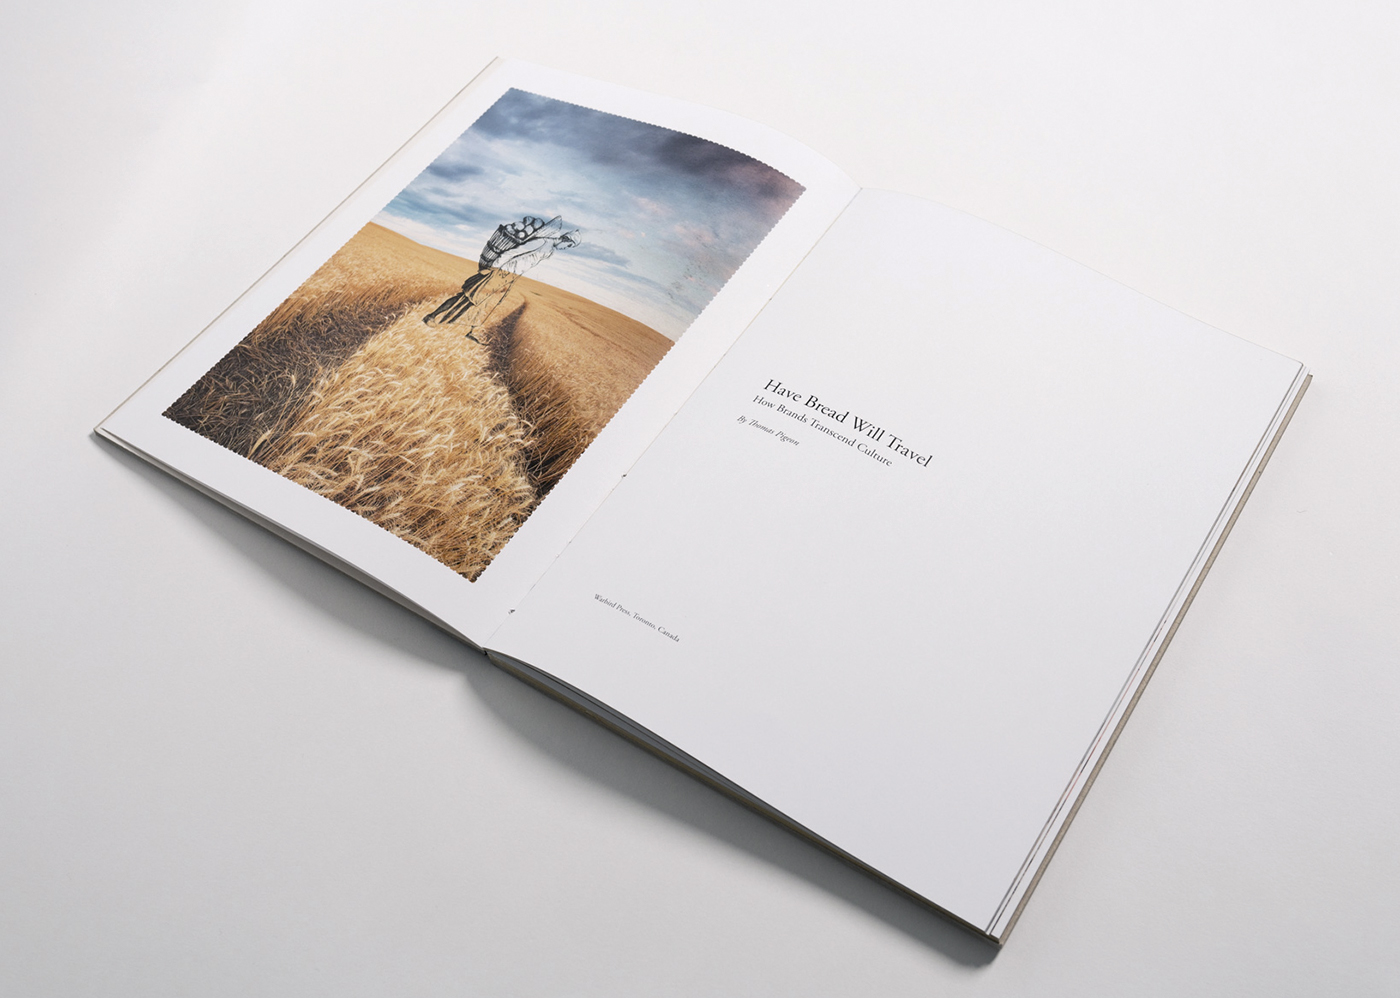 Wheat field introduction spread of Pigeon book. Simplistic and minimal design with powerful imagery.